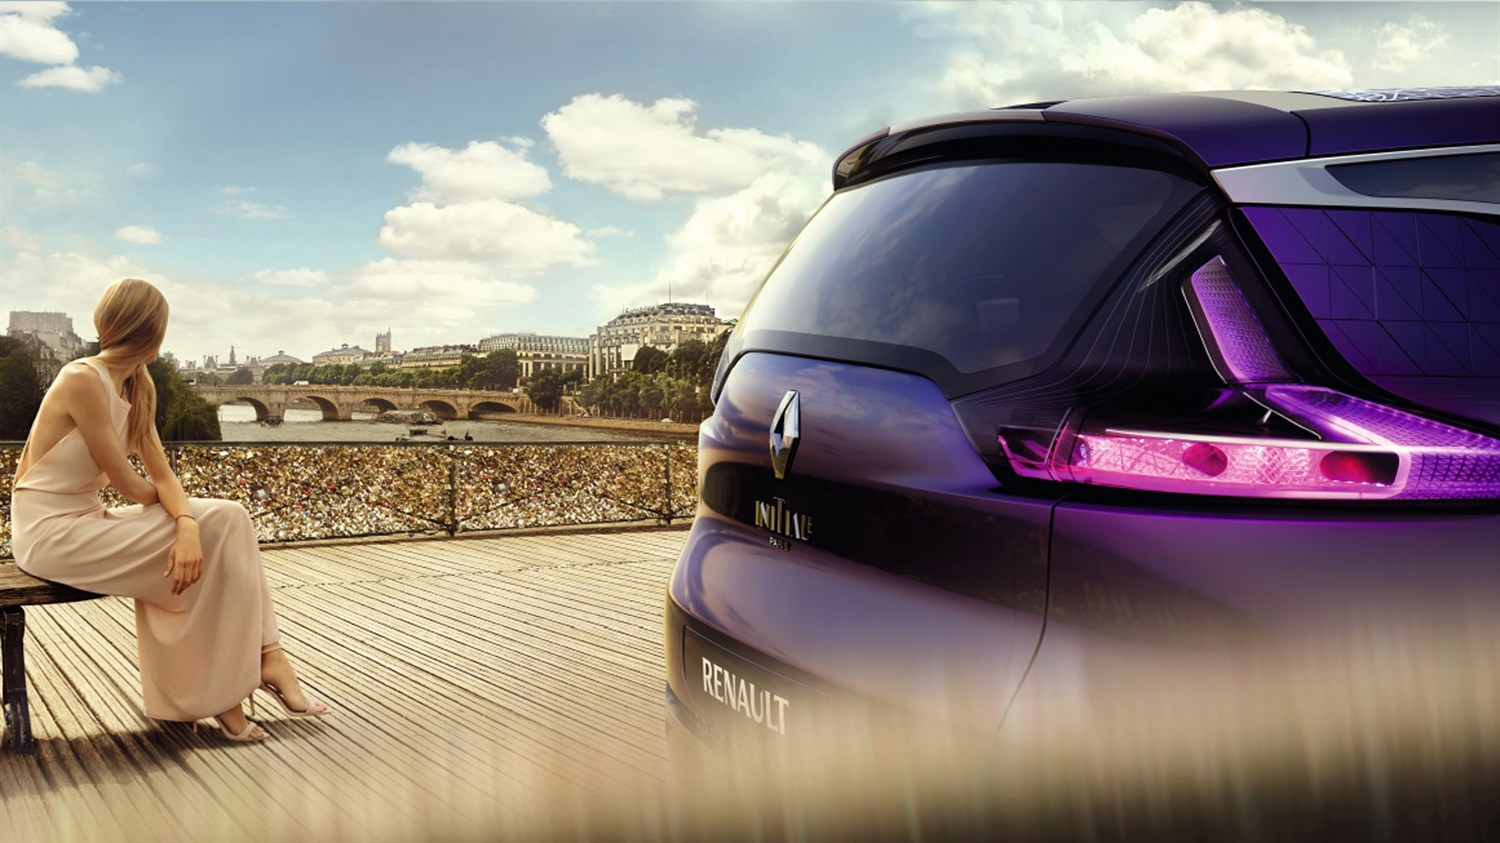 Renault INITIALE PARIS Concept - rear of vehicle pont des arts